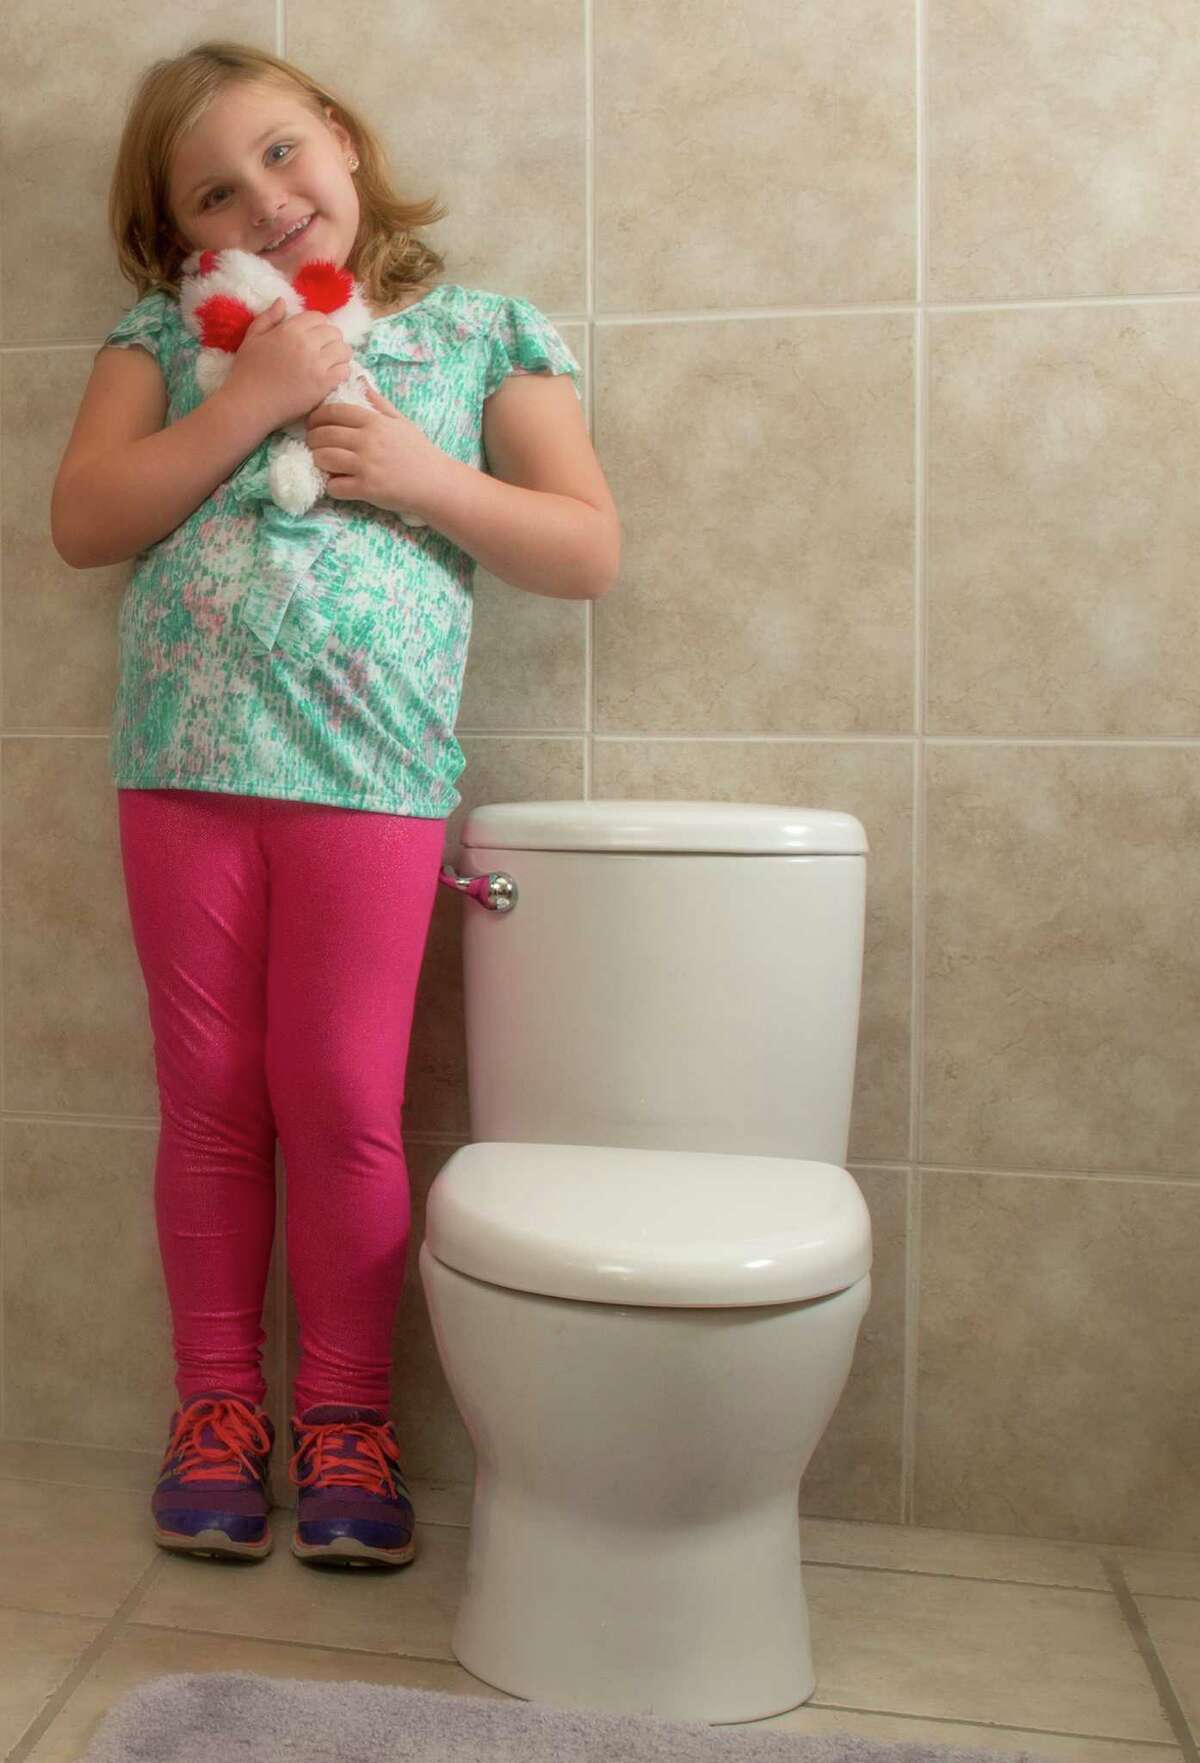 Mansfield Plumbing, based in Ohio, introduced its Elementary toilet for children 3 to 9 in 2013.